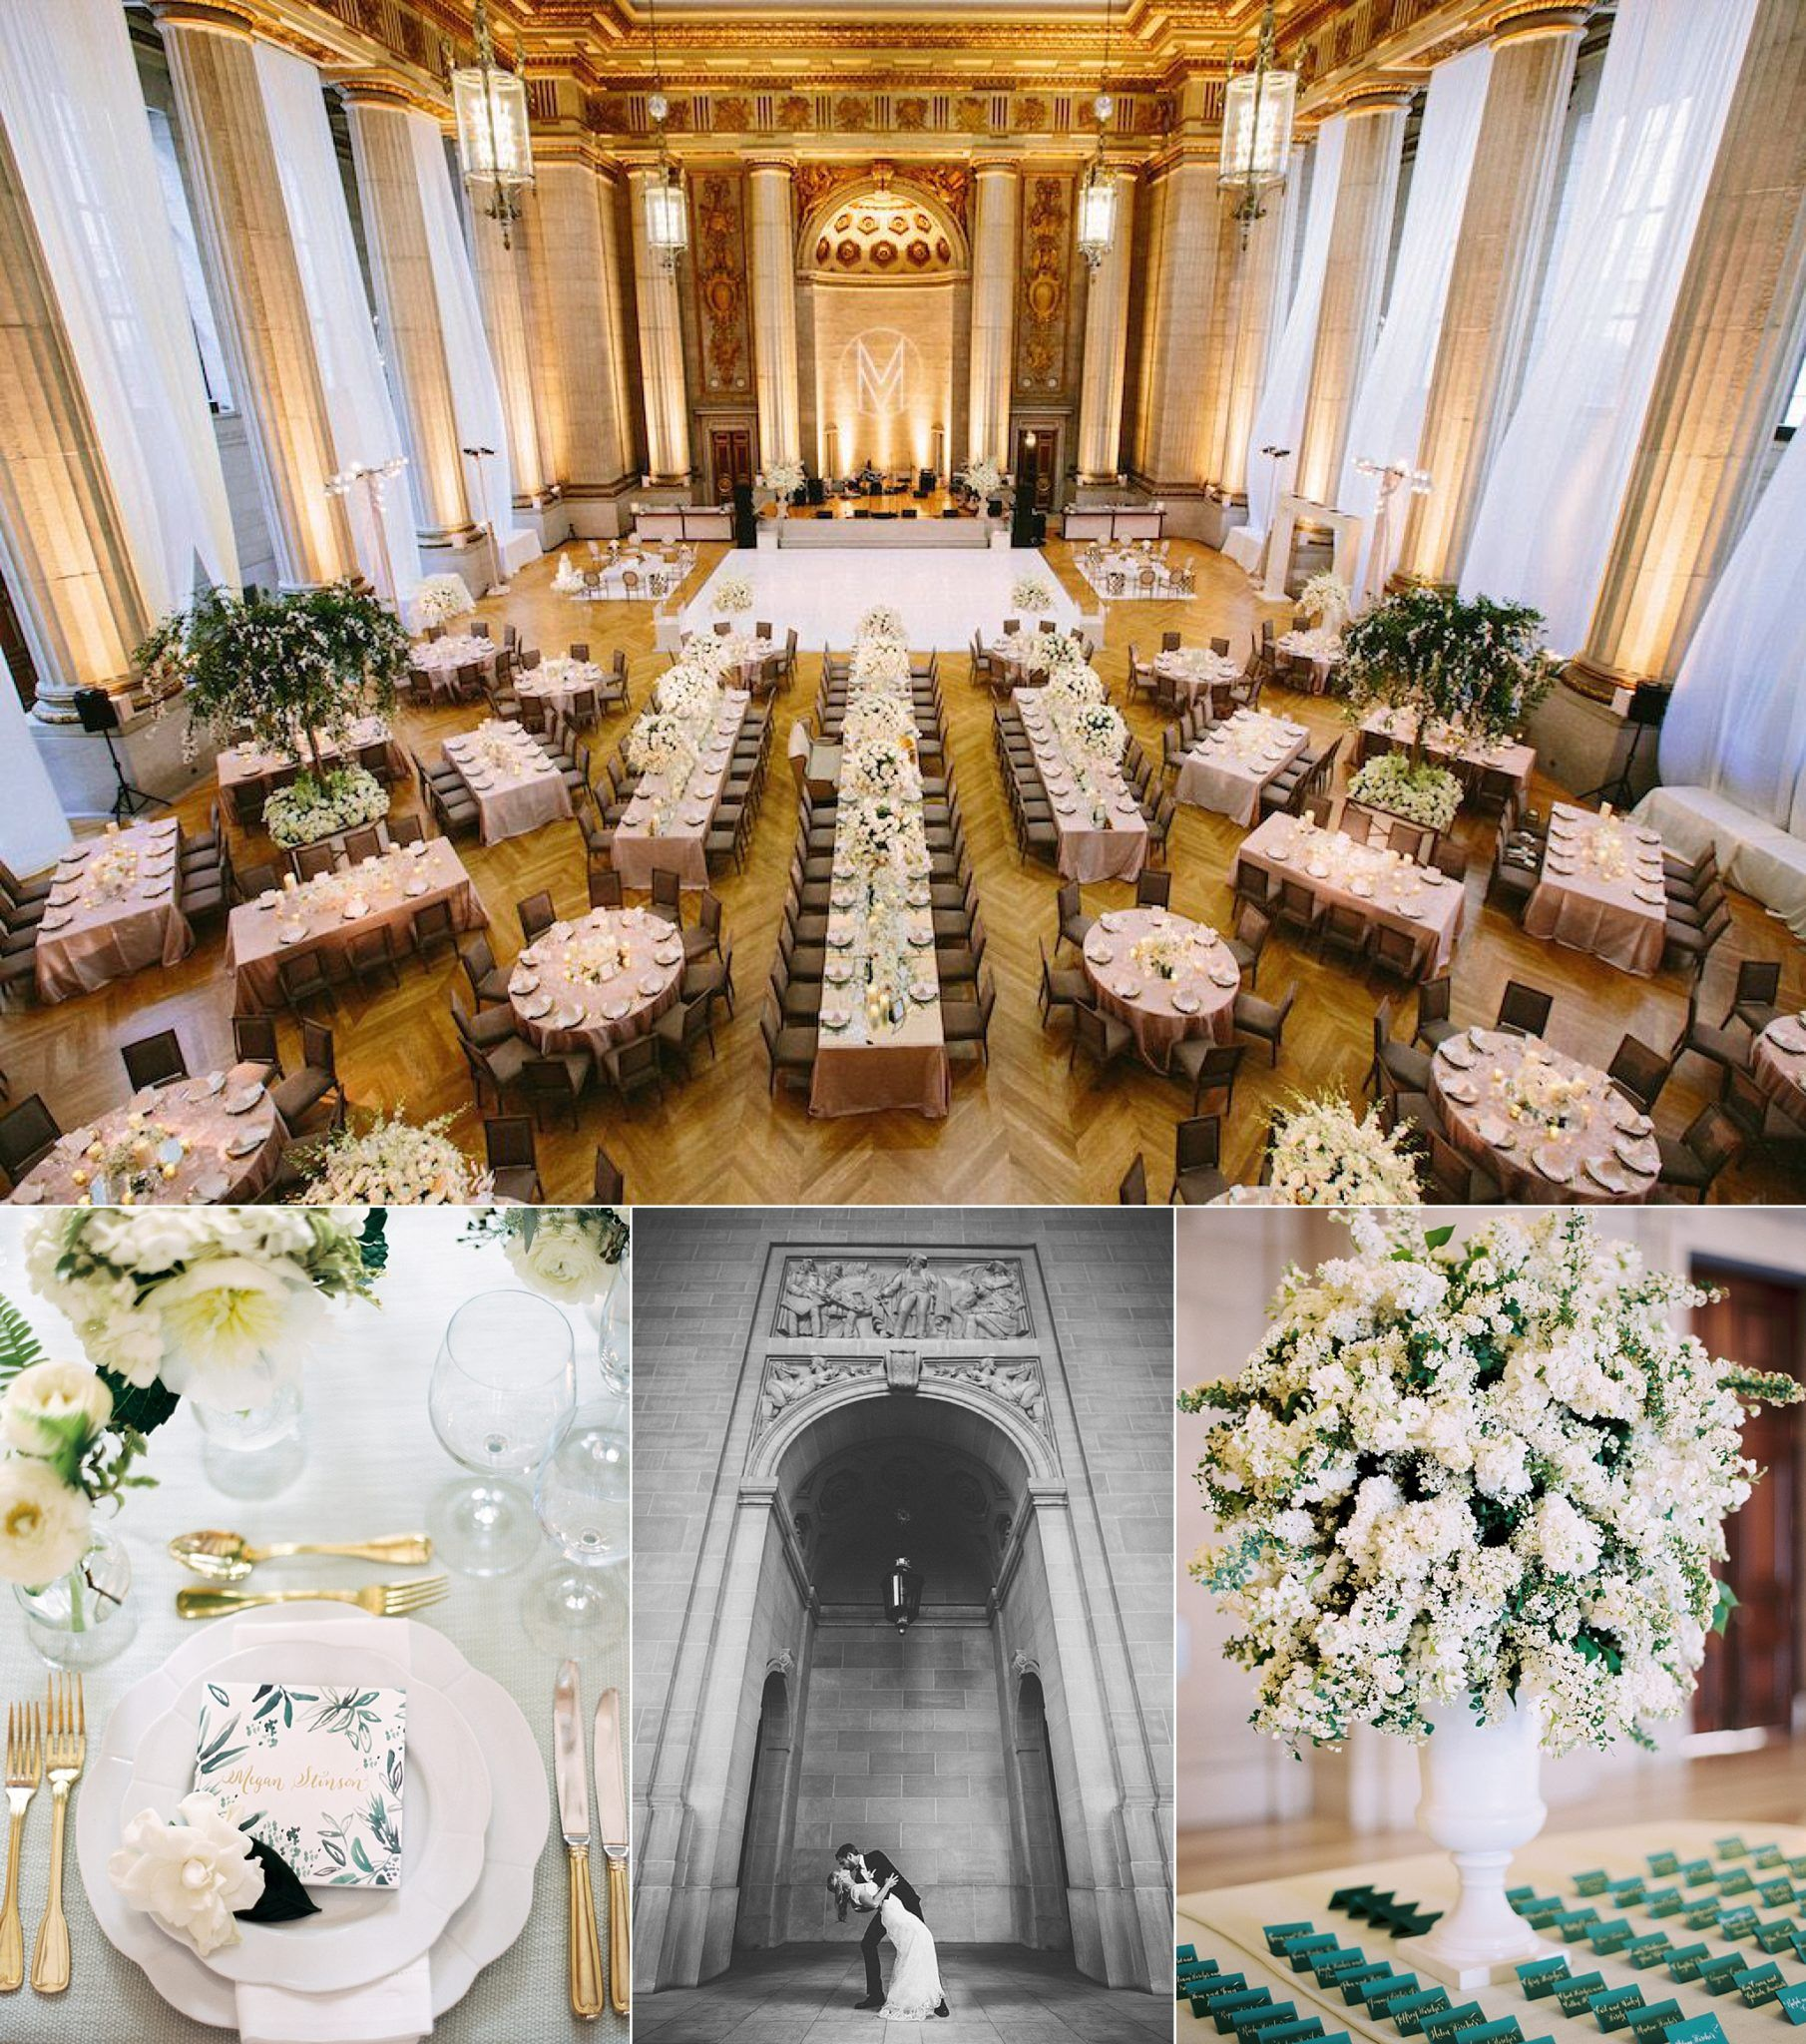 Top 18 Small Wedding Venues In Brisbane: Pin On THE WEDDING